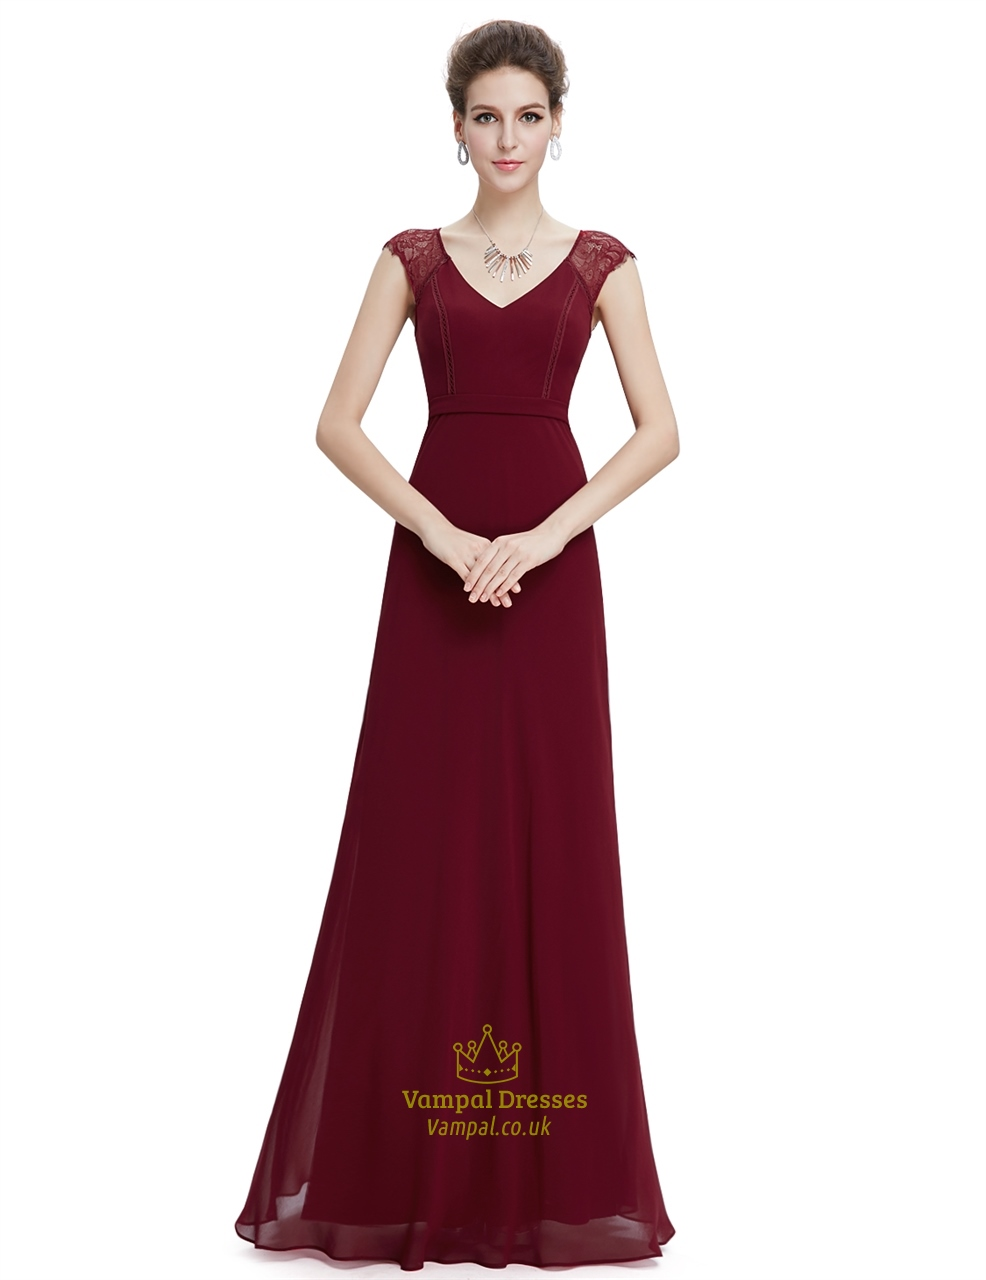 Burgundy A Line Chiffon Prom Dresses With Lace Cap Sleeves | Vampal ...